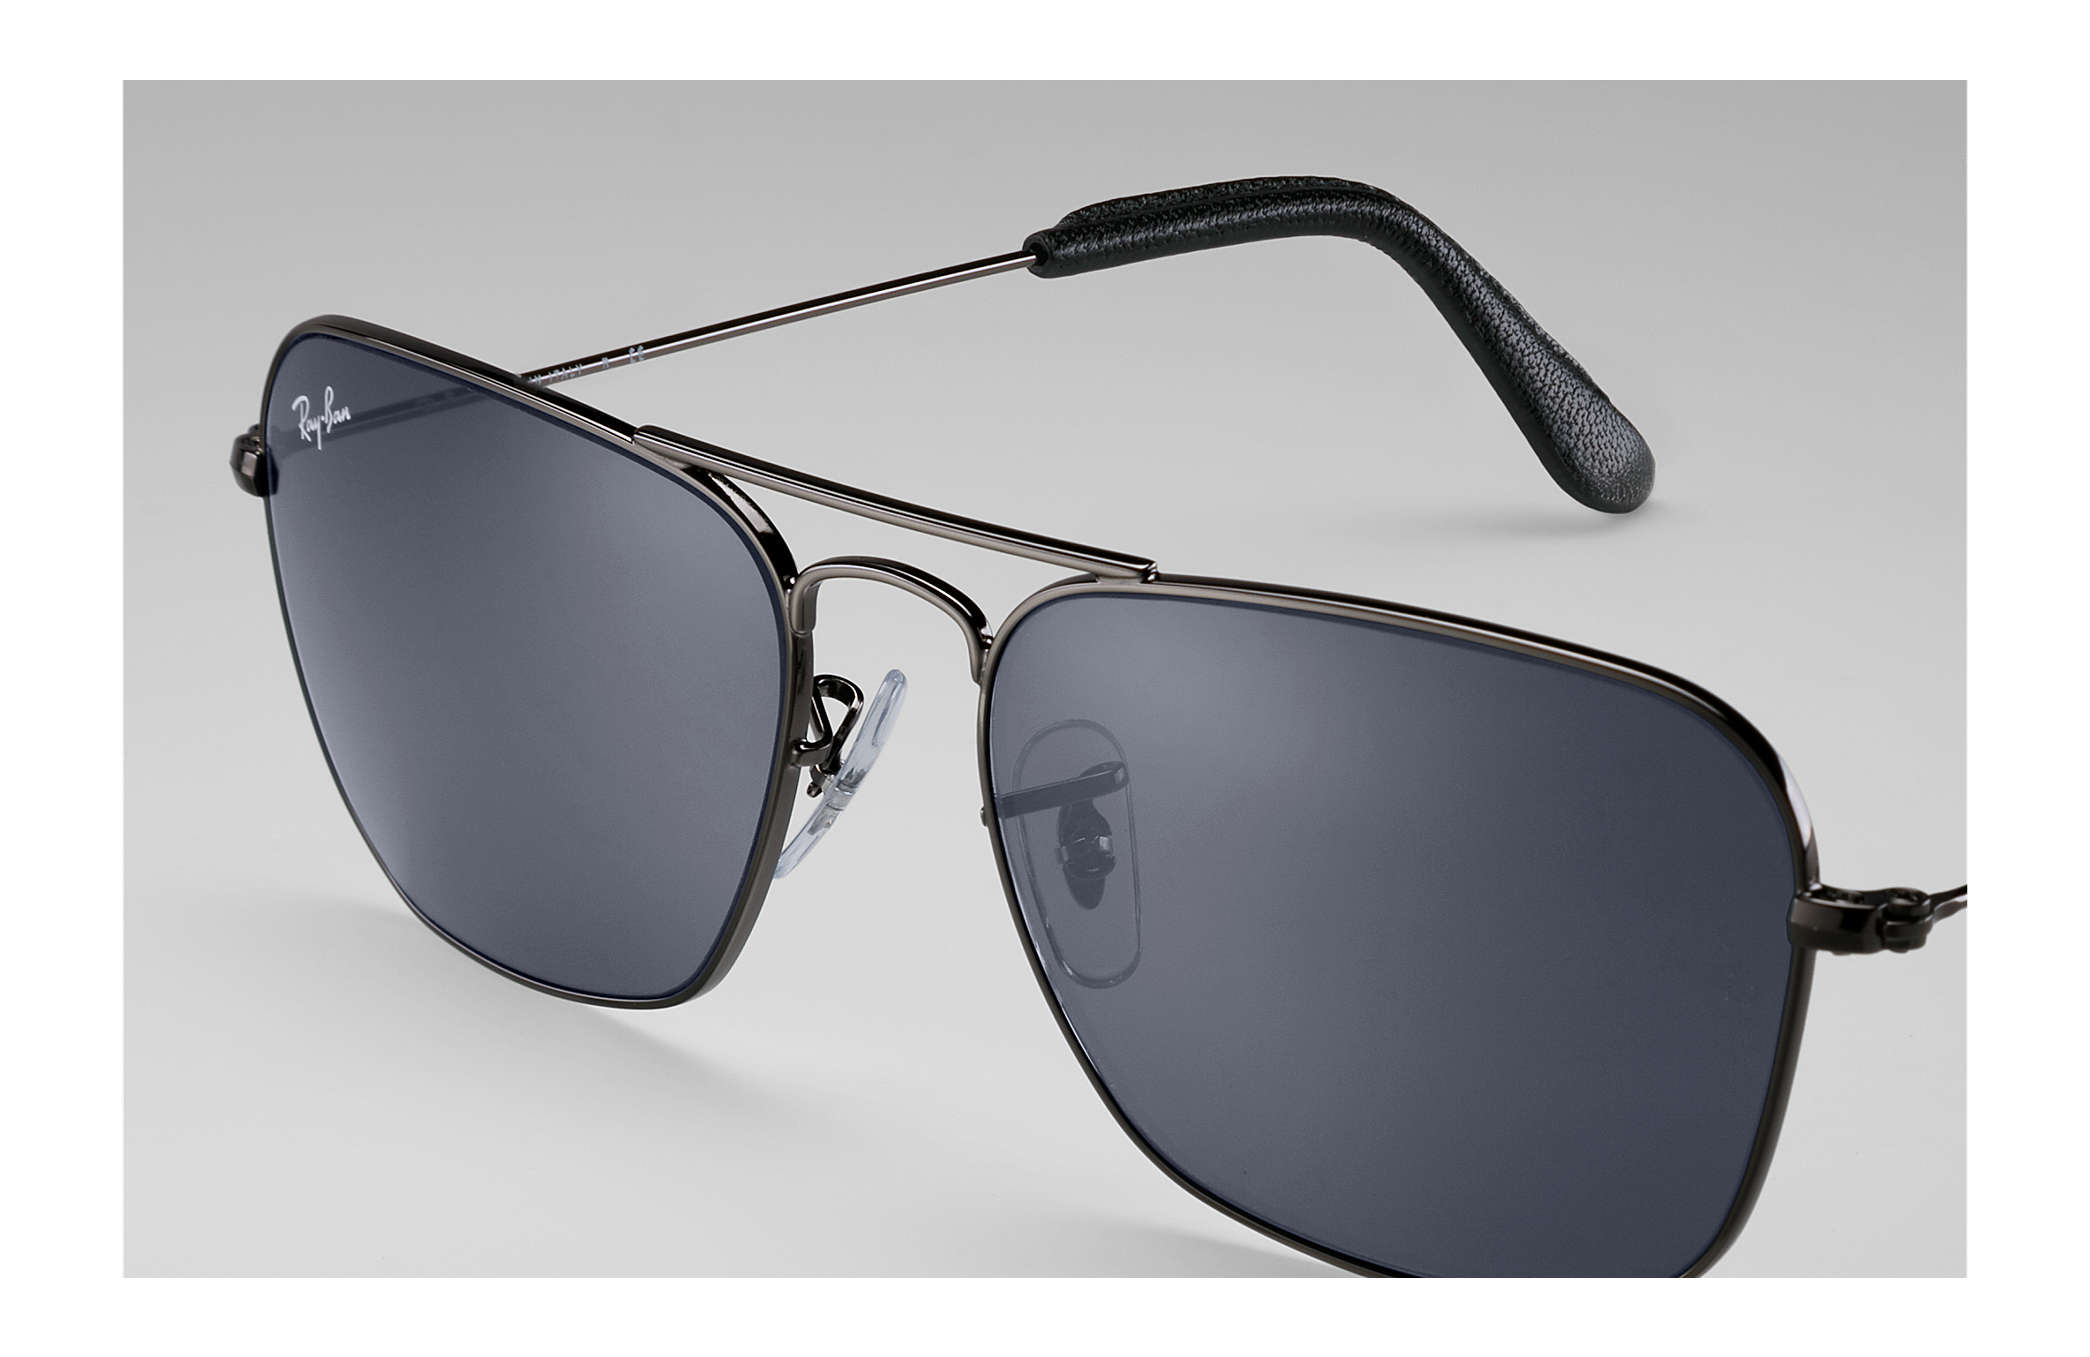 Caravan @collection sunglasses Gunmetal Metal, Blue/Gray Classic ...